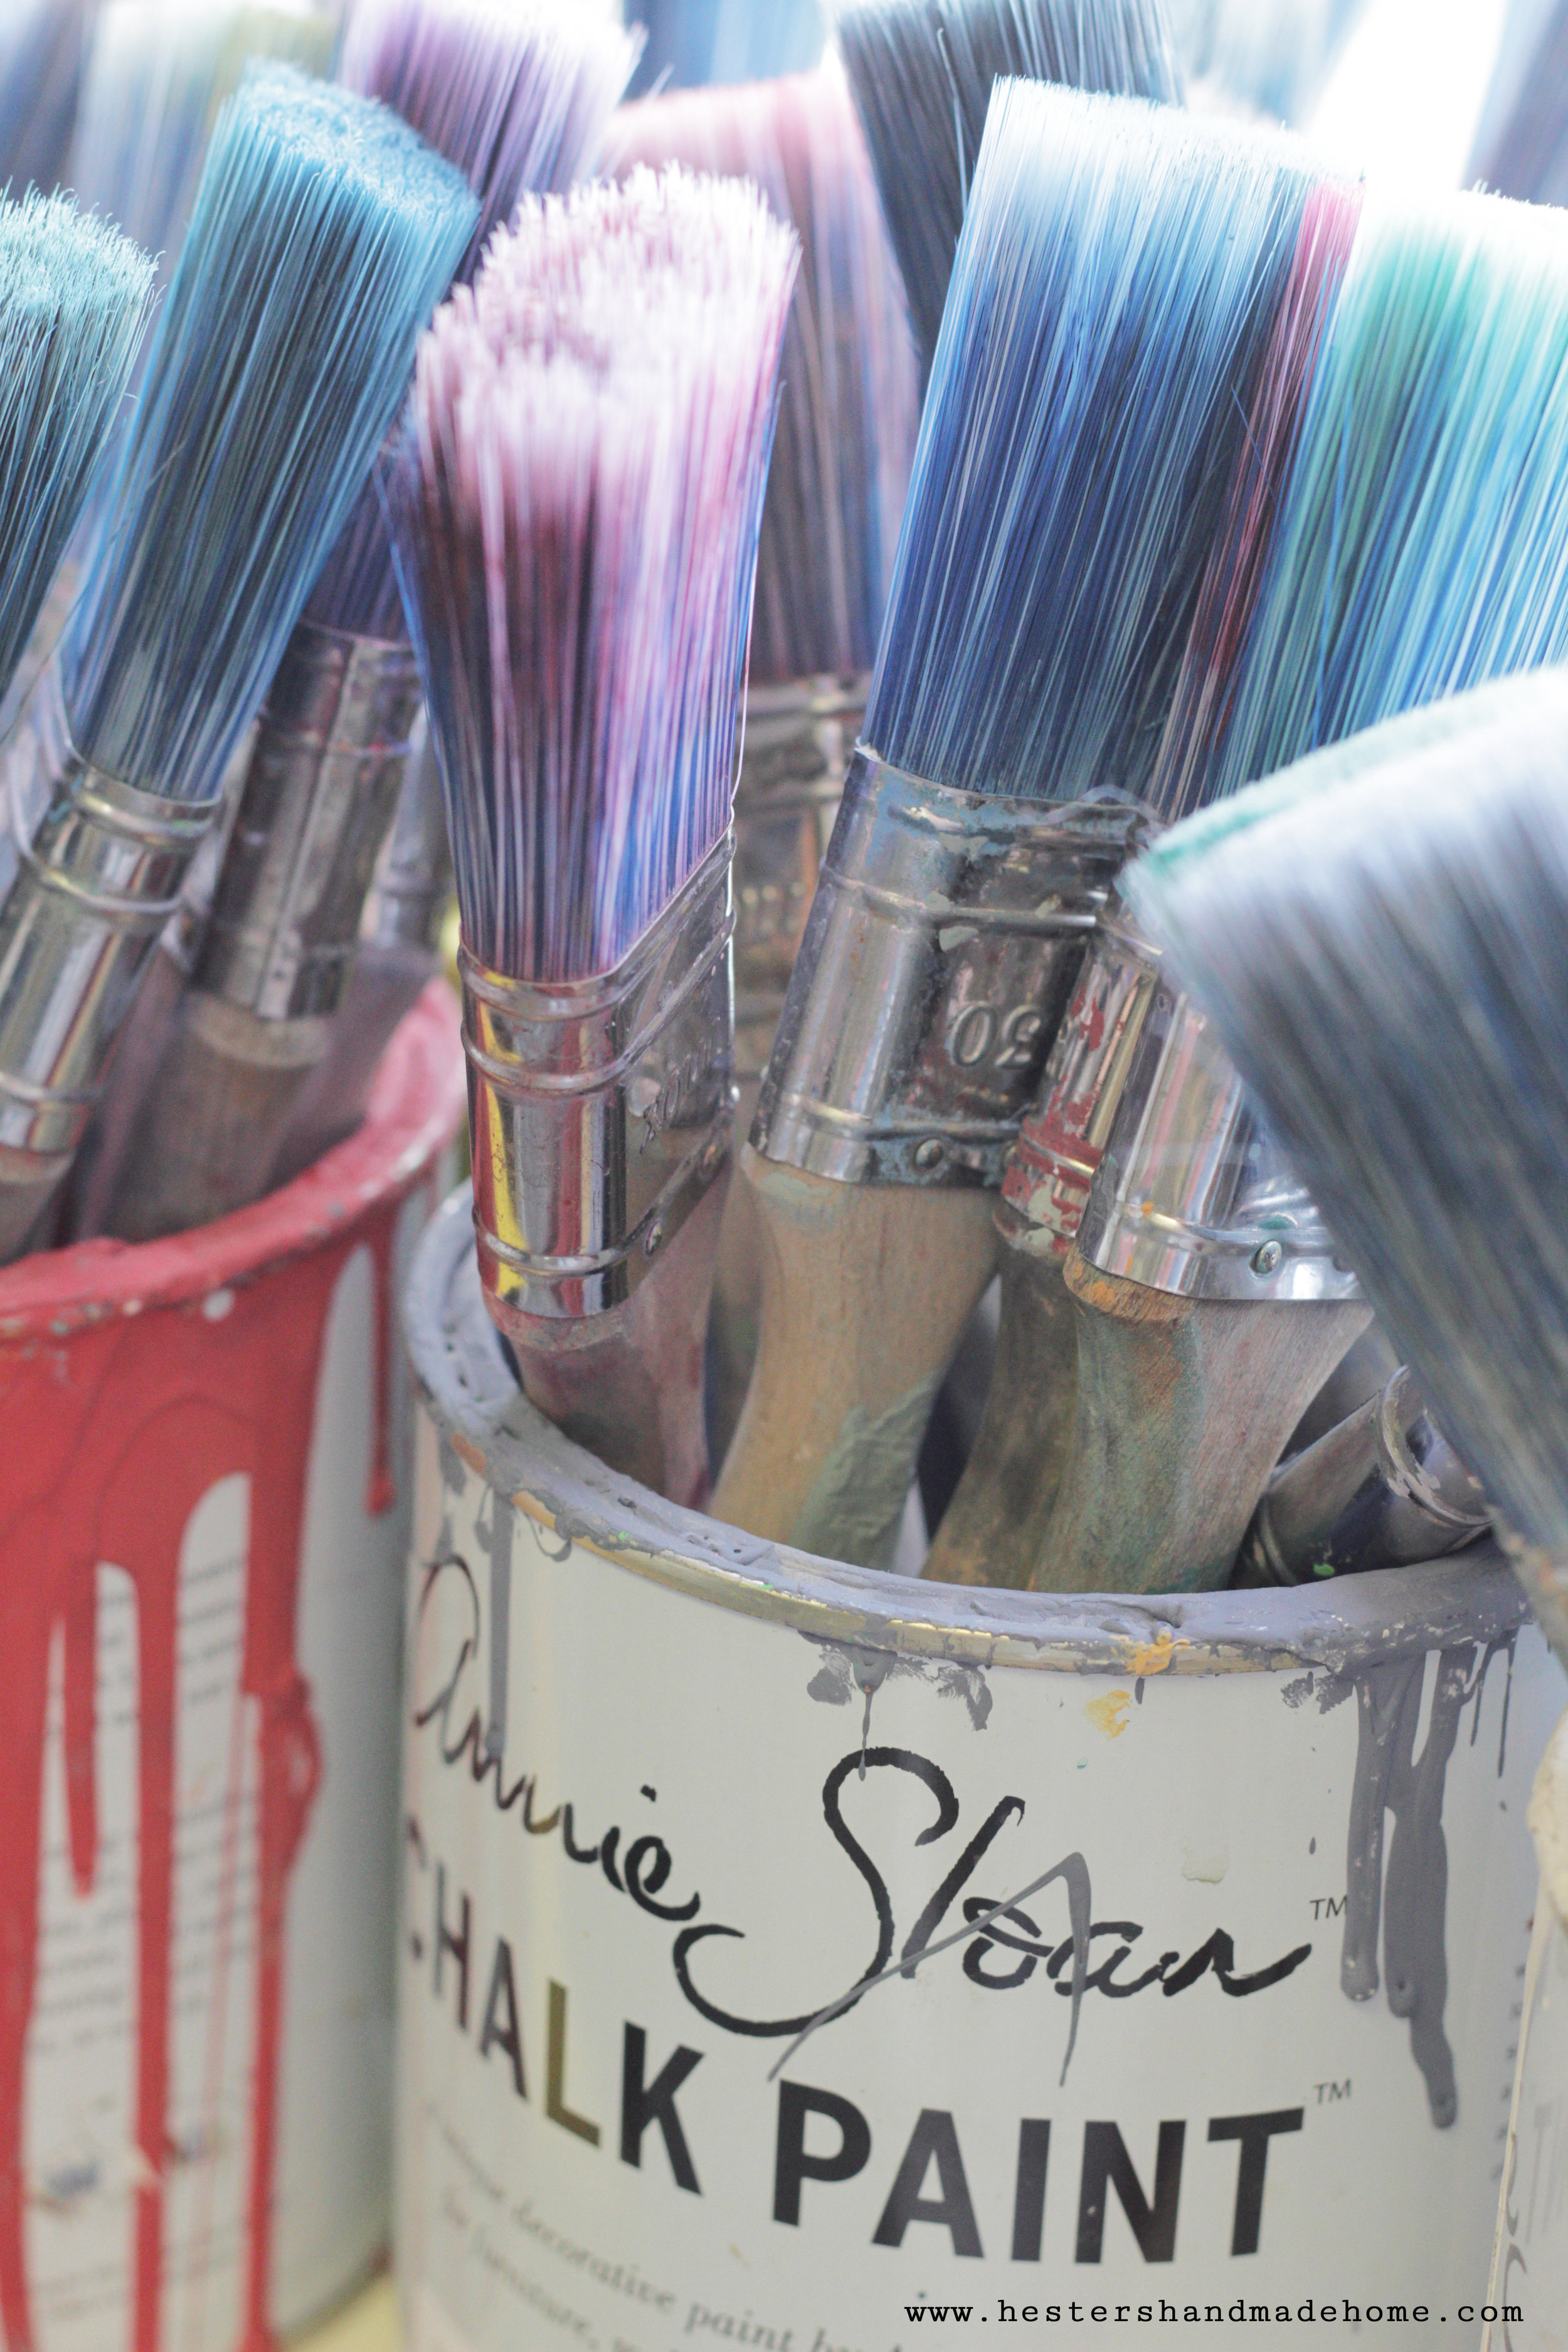 Bucket of brushes in Annie Sloan's studio, photo by www.hestershandmadehome.com